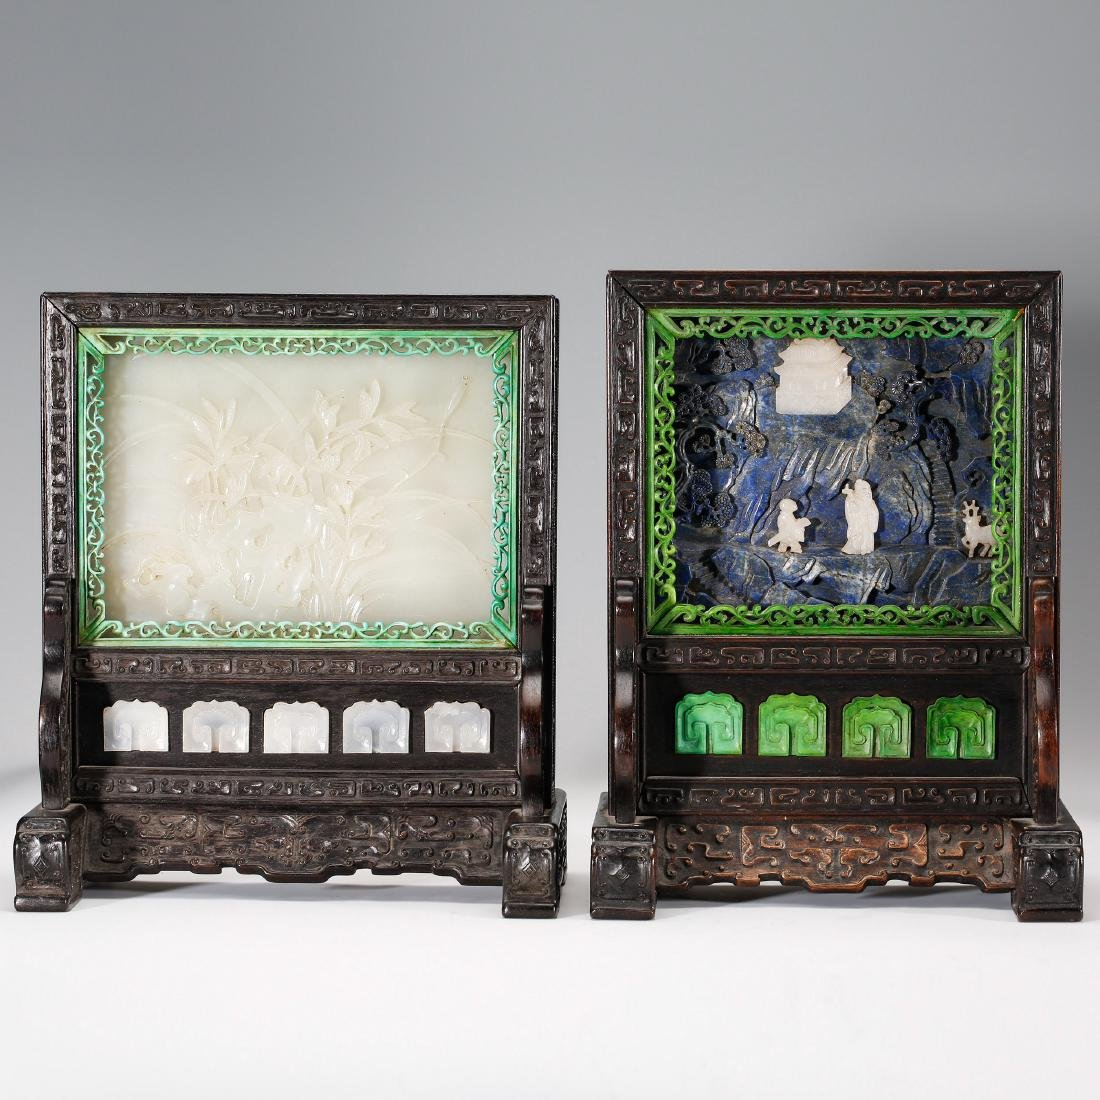 TWO CHINESE JADE AND LAPIS TABLE SCREEN